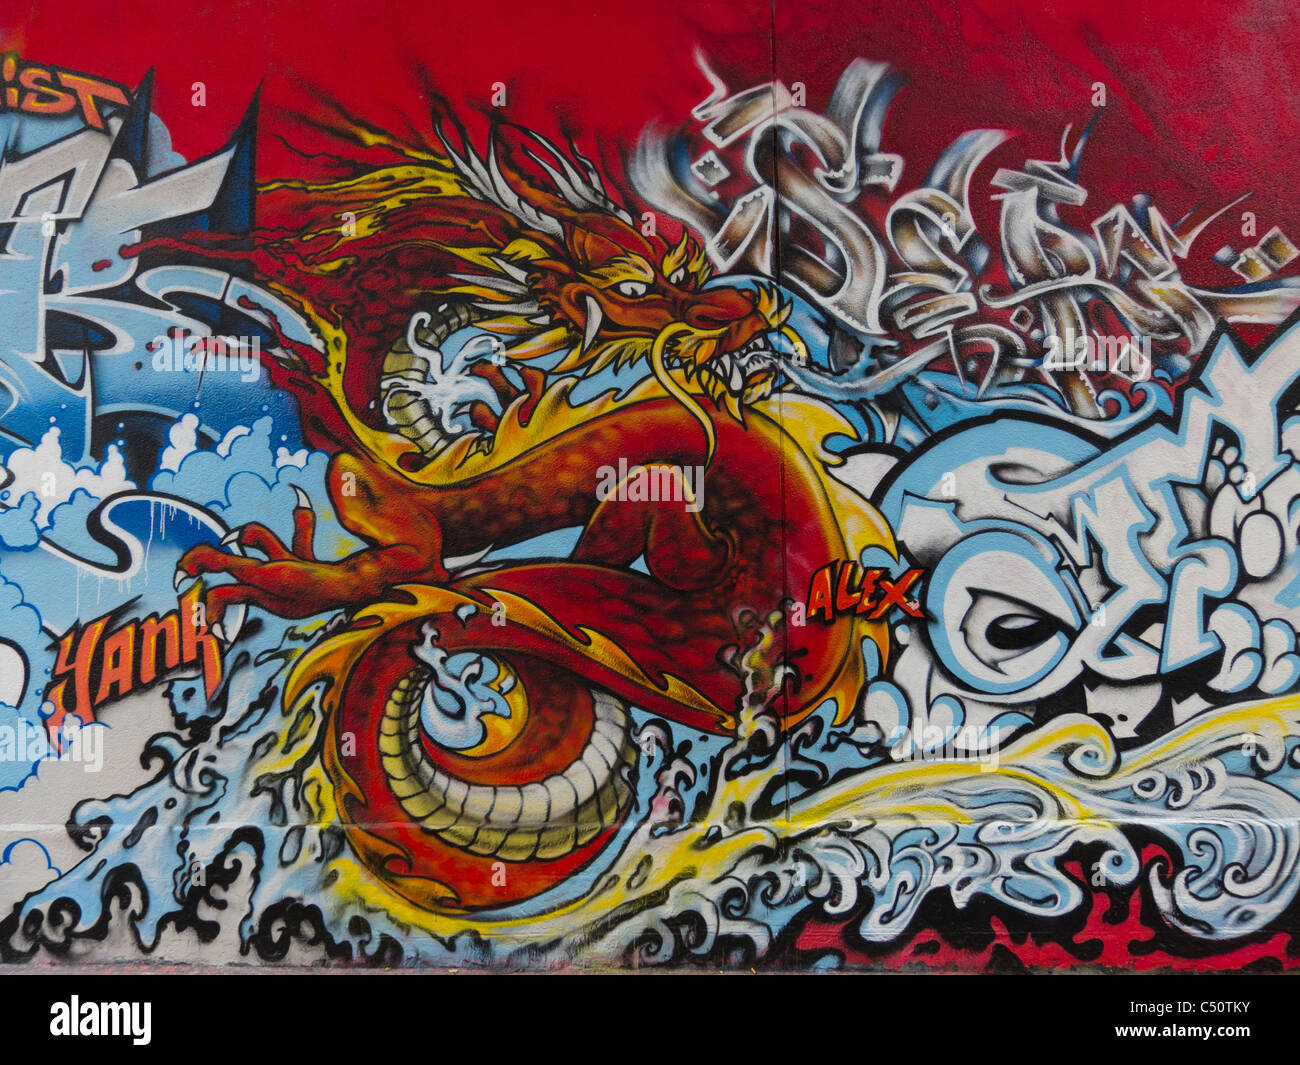 Paris, France, Graffiti Artist's Painting Wall, Asian Graphic Dragon Illustration, Street Art - Stock Image